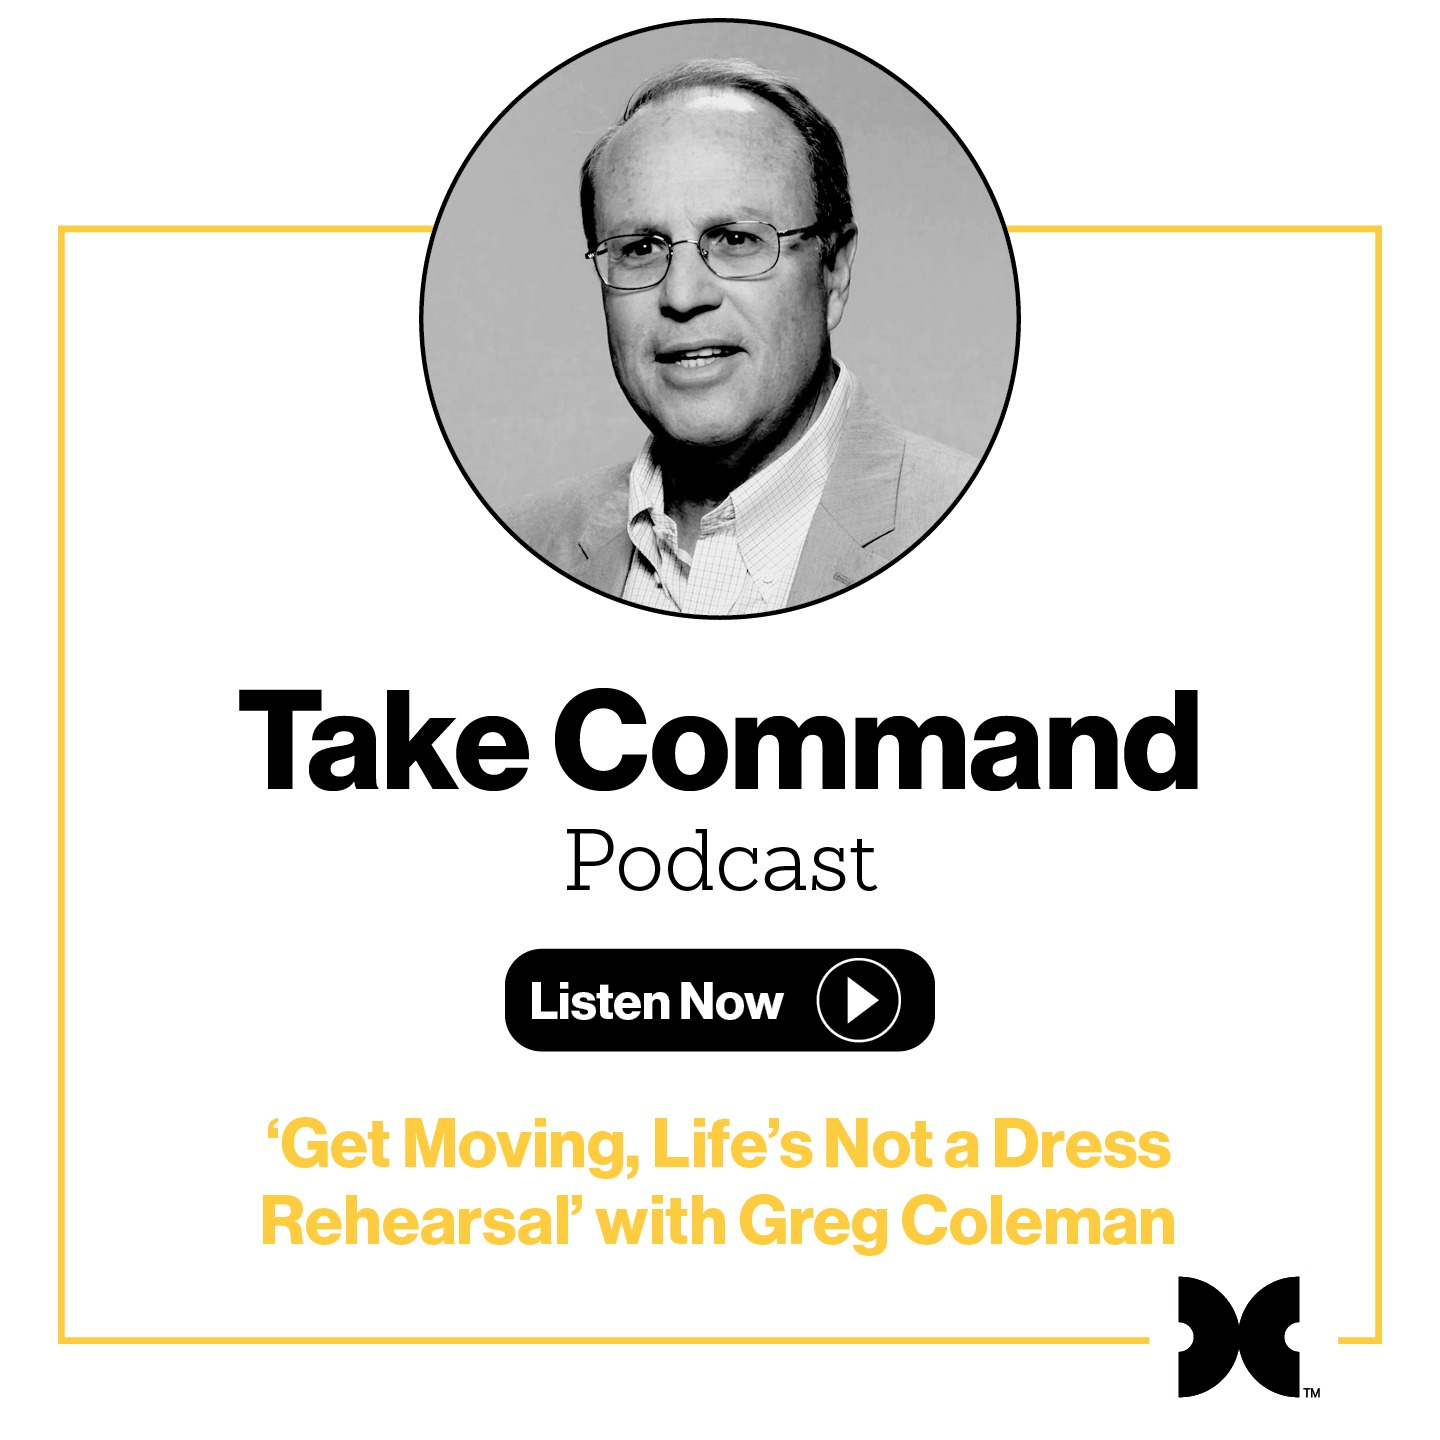 #6 'Get Moving, Life's Not a Dress Rehearsal' with Greg Coleman